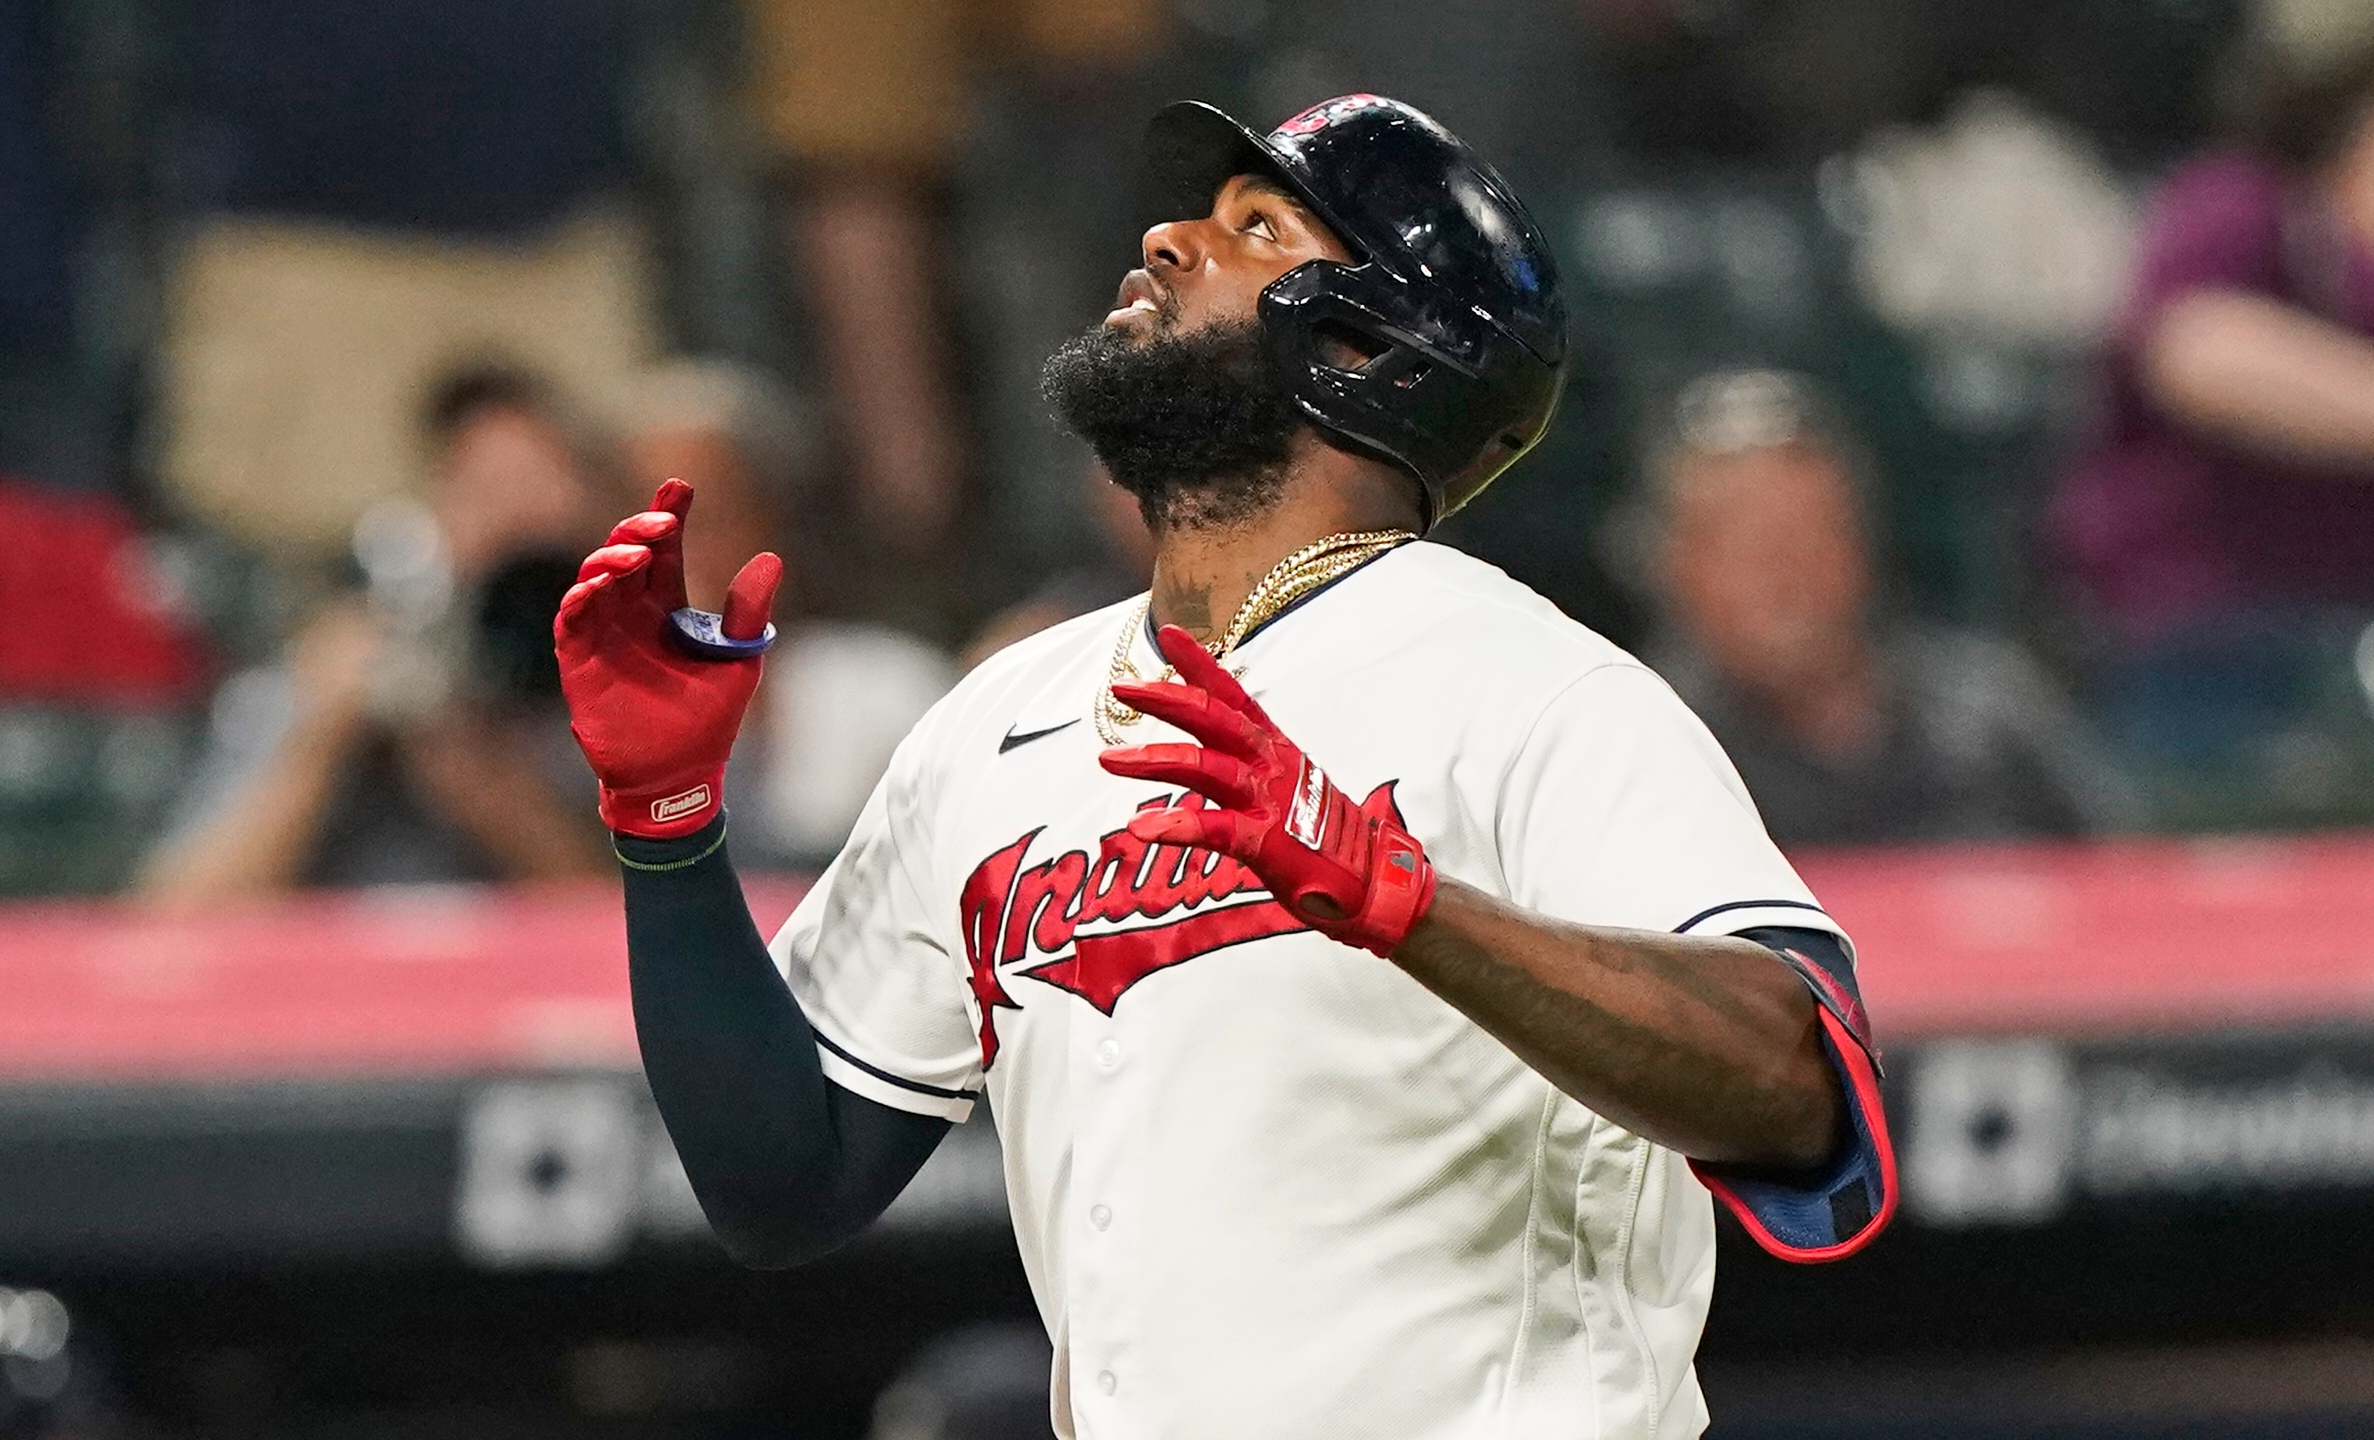 Cleveland Indians' Franmil Reyes looks up after hitting a solo home run during the seventh inning of the team's baseball game against the Texas Rangers, Wednesday, Aug. 25, 2021, in Cleveland. (AP Photo/Tony Dejak)